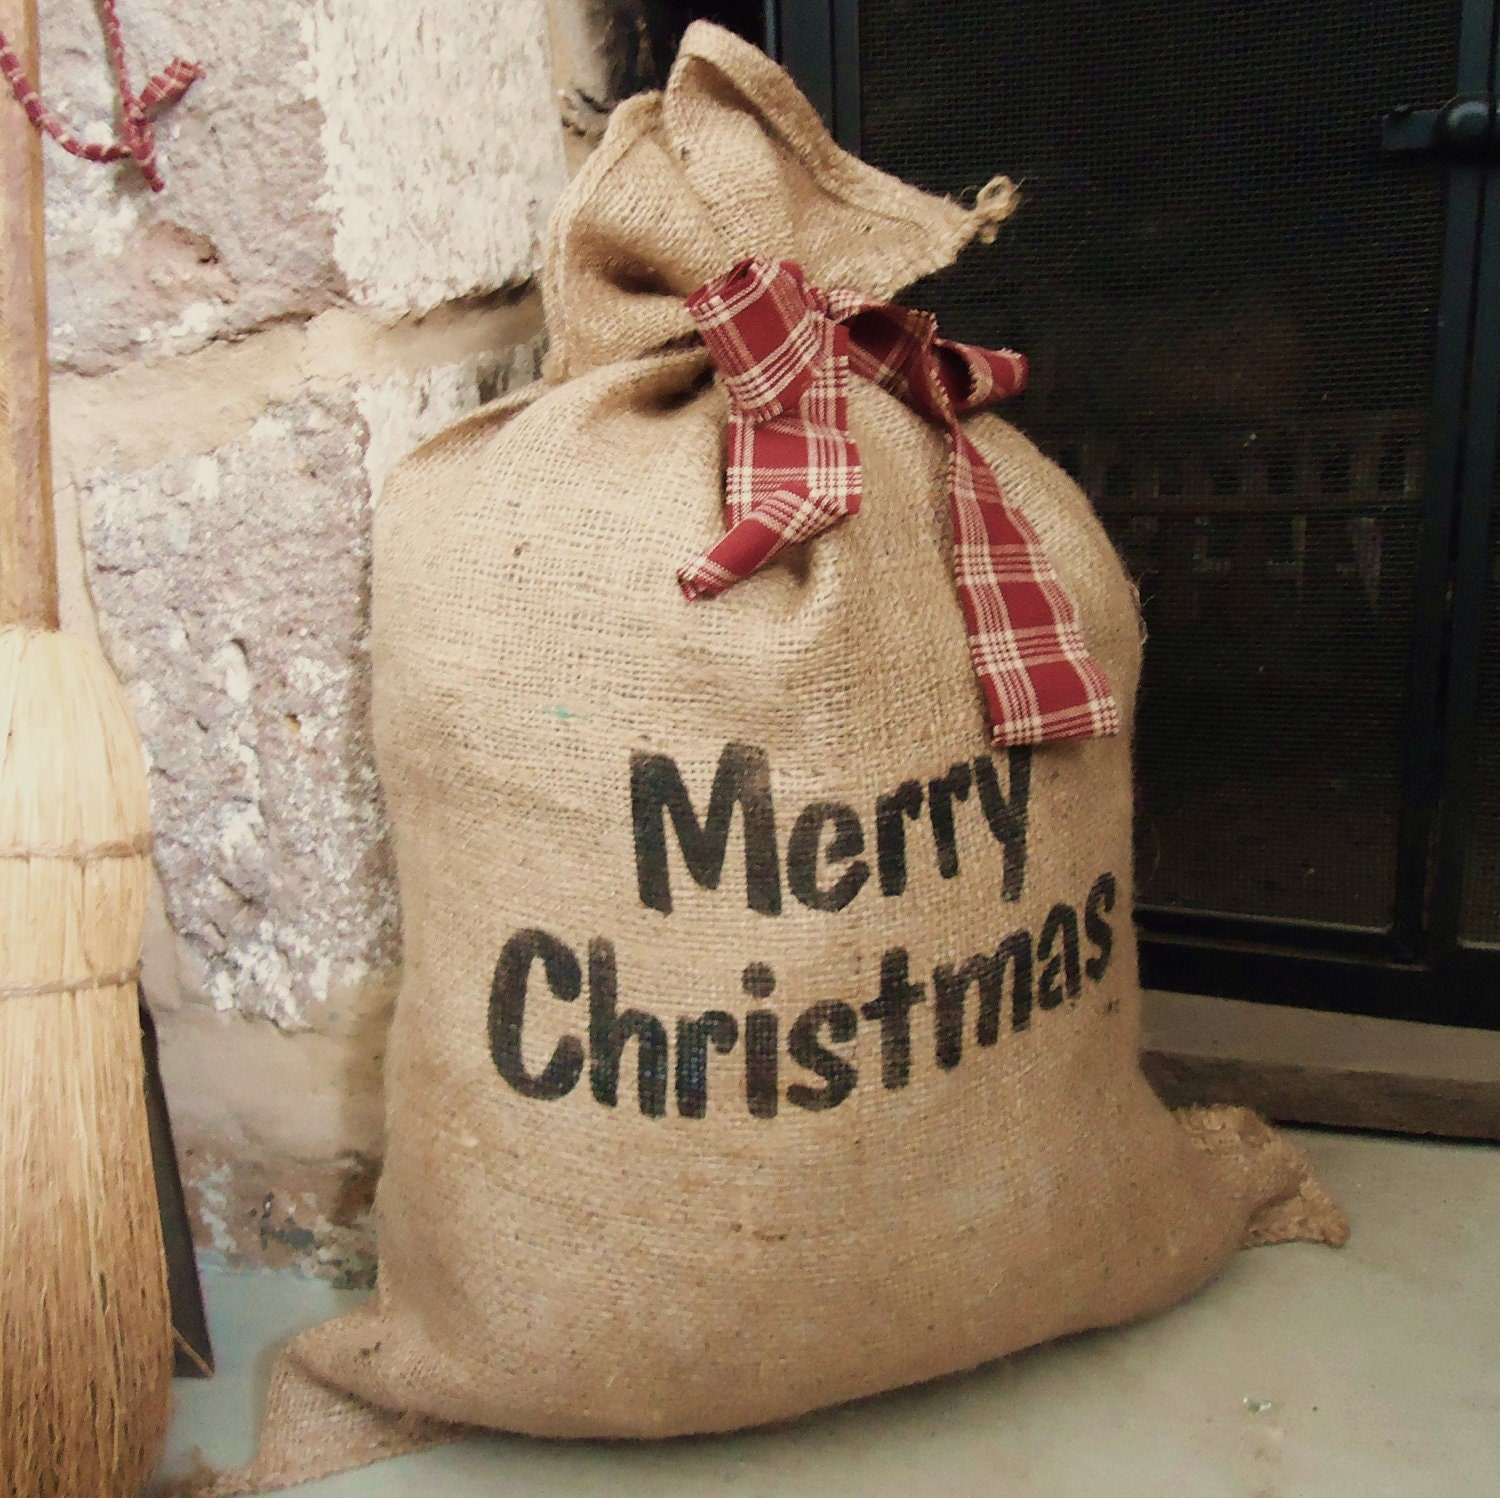 Christmas burlap bag re useable gift wrap country christmas Country christmas gifts to make